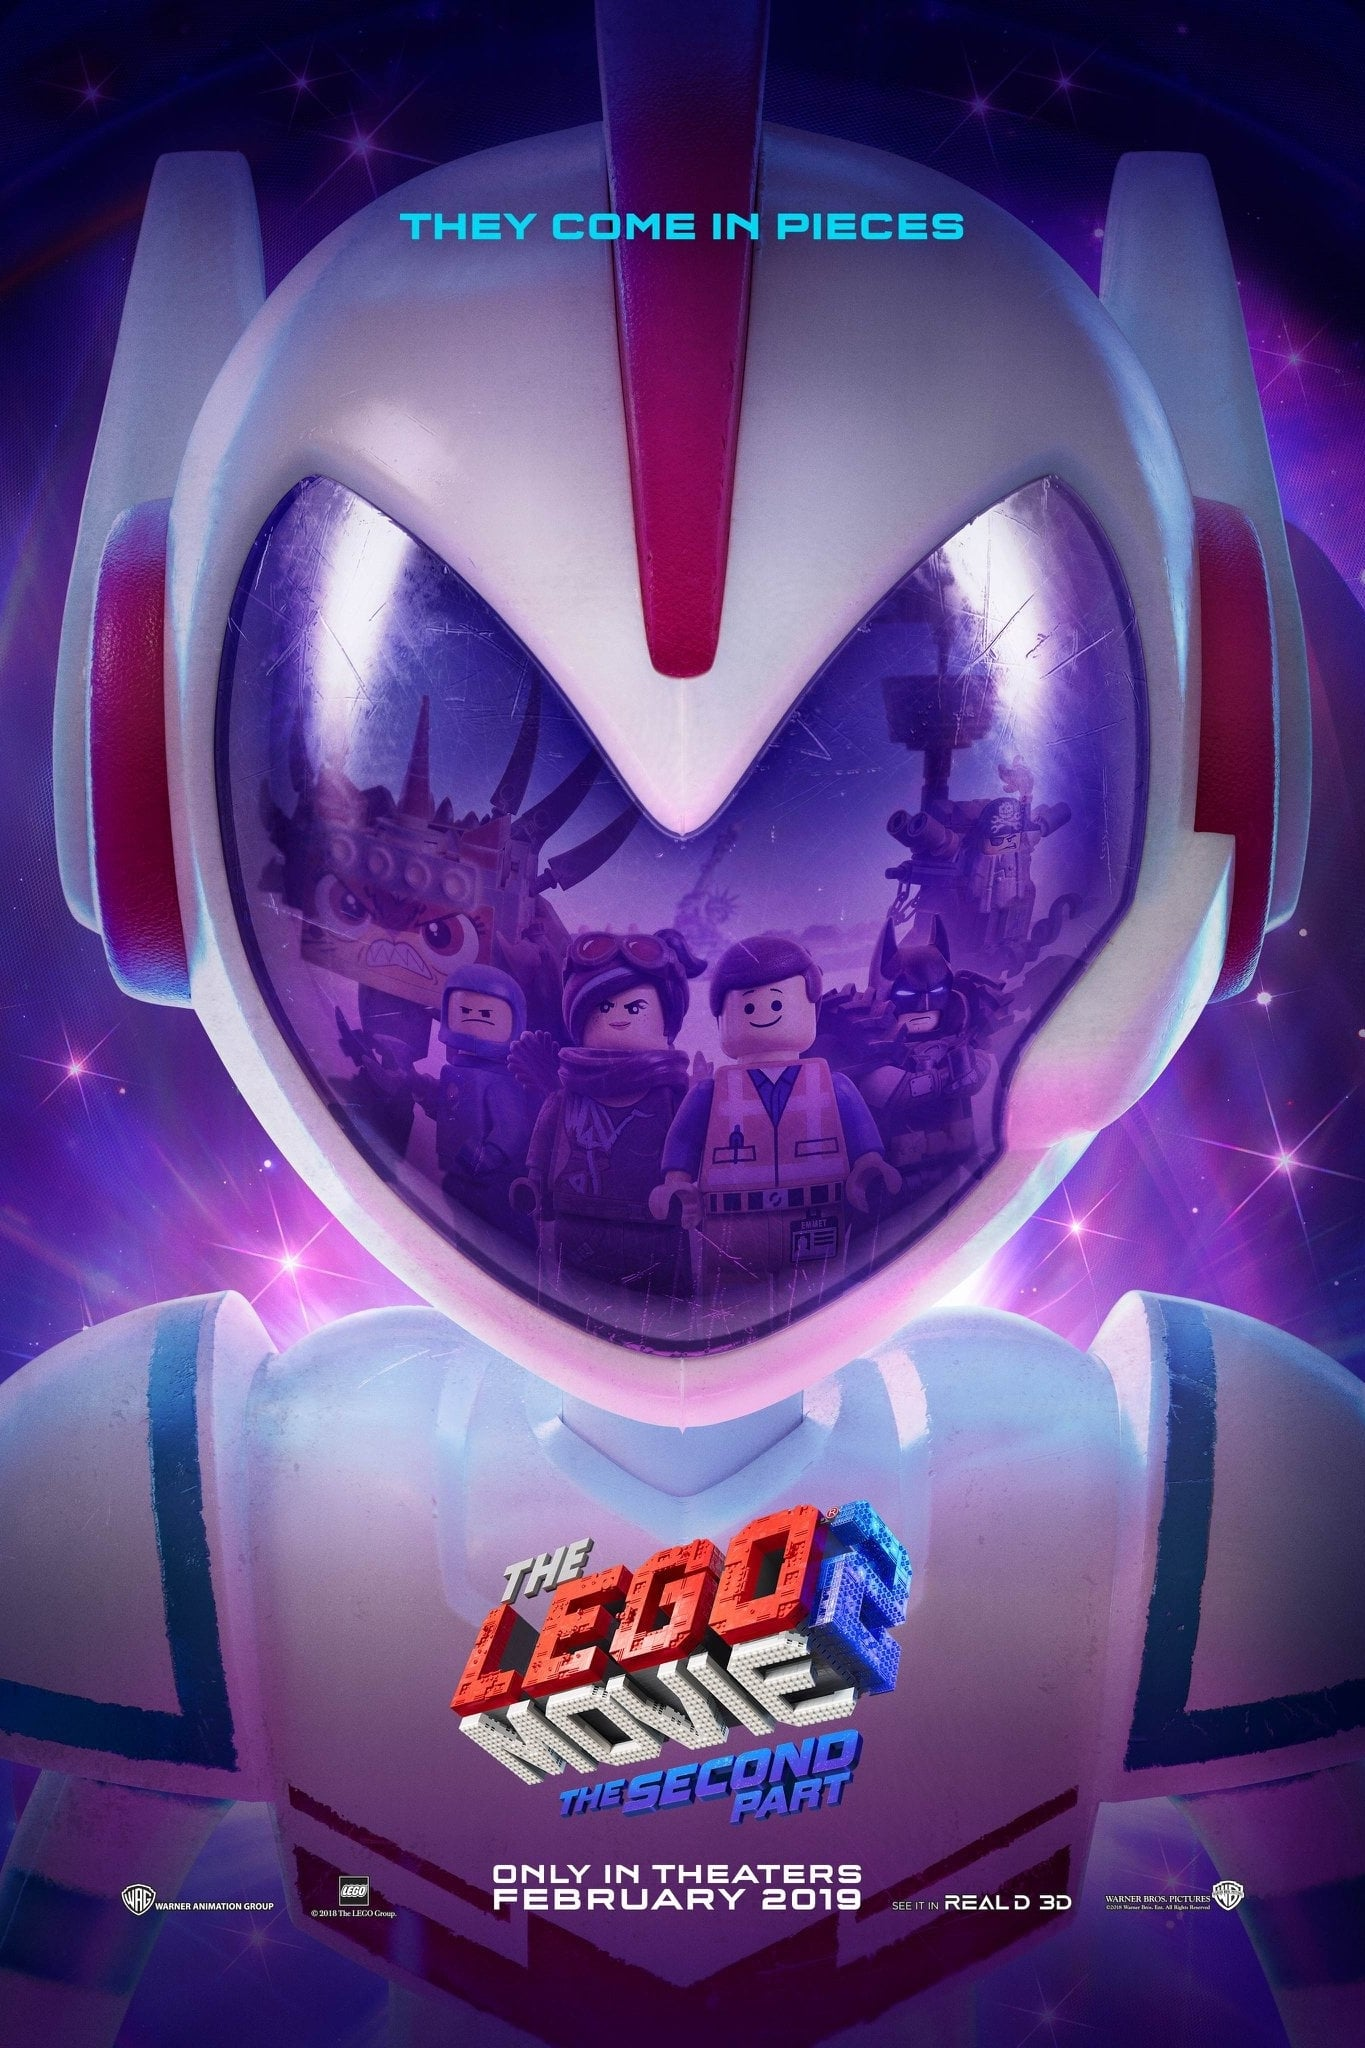 Poster and image movie Film The Lego Movie 2: The Second Part - The Lego Movie 2: The Second Part 2019